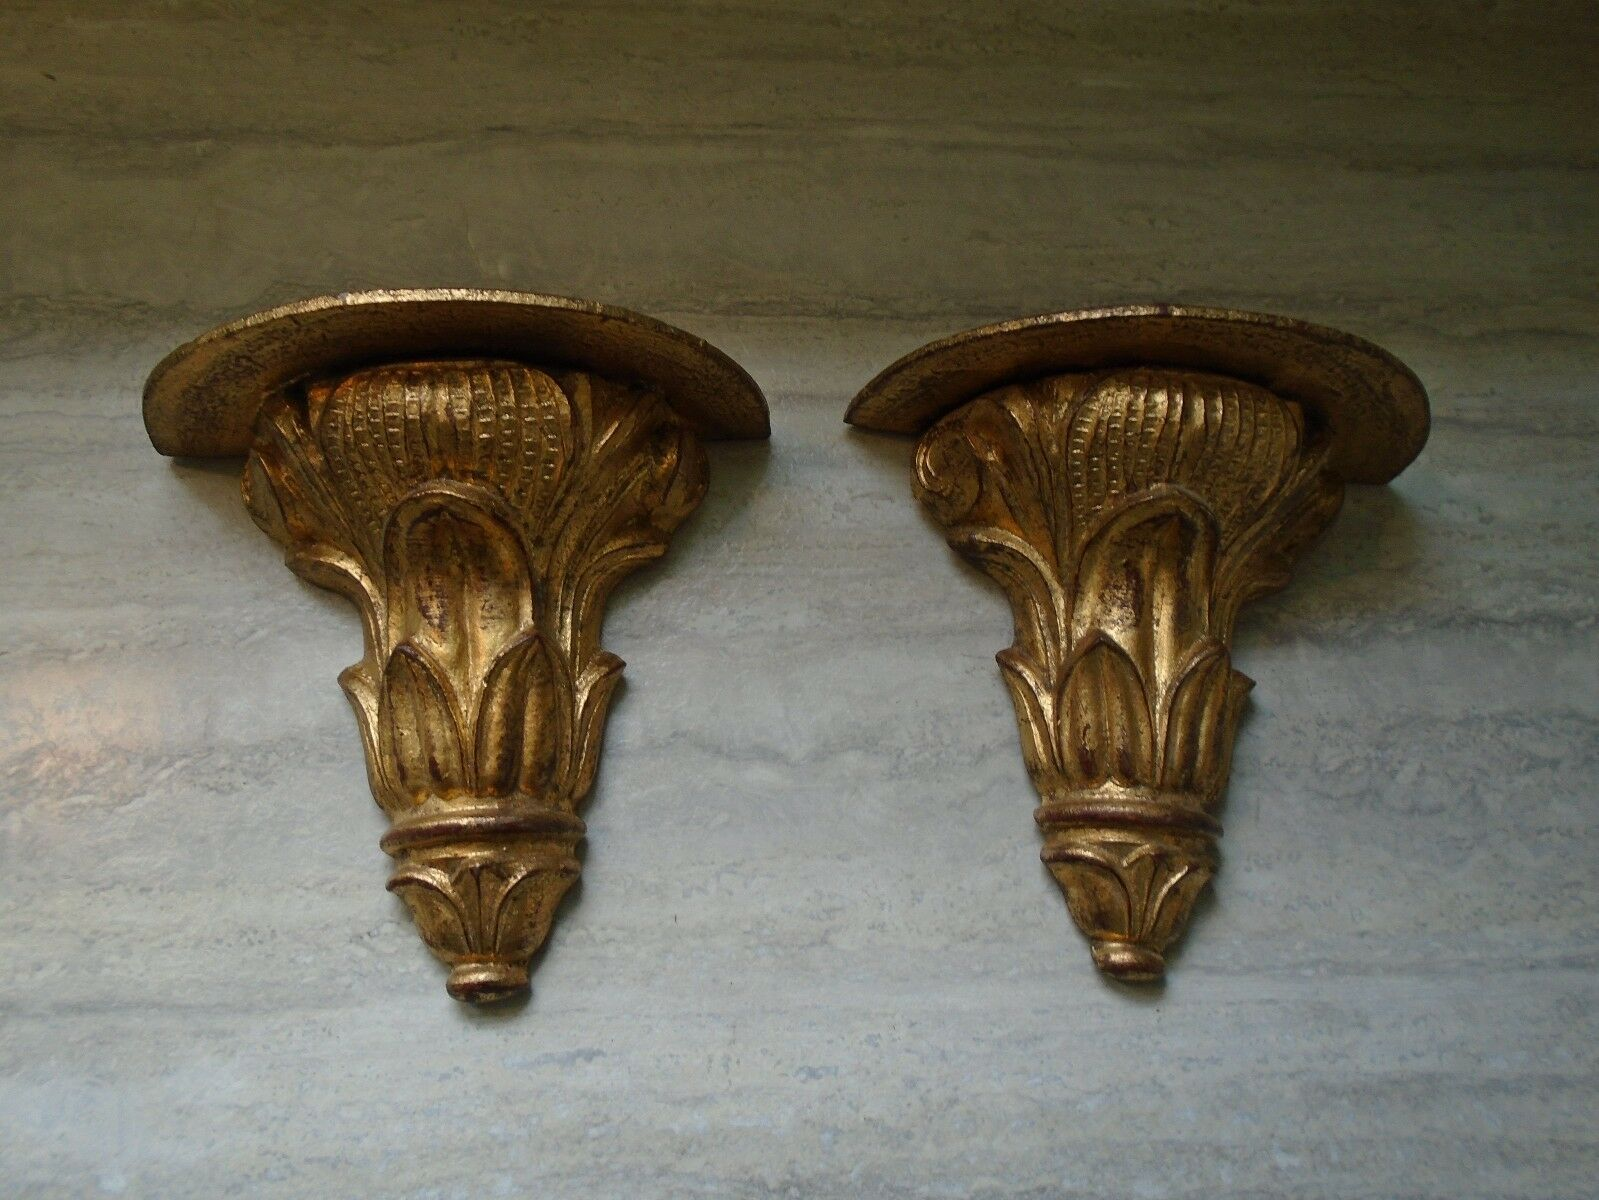 Vintage Gold Florentine Italy Carved Wood Wall Sconce Shelf Pair